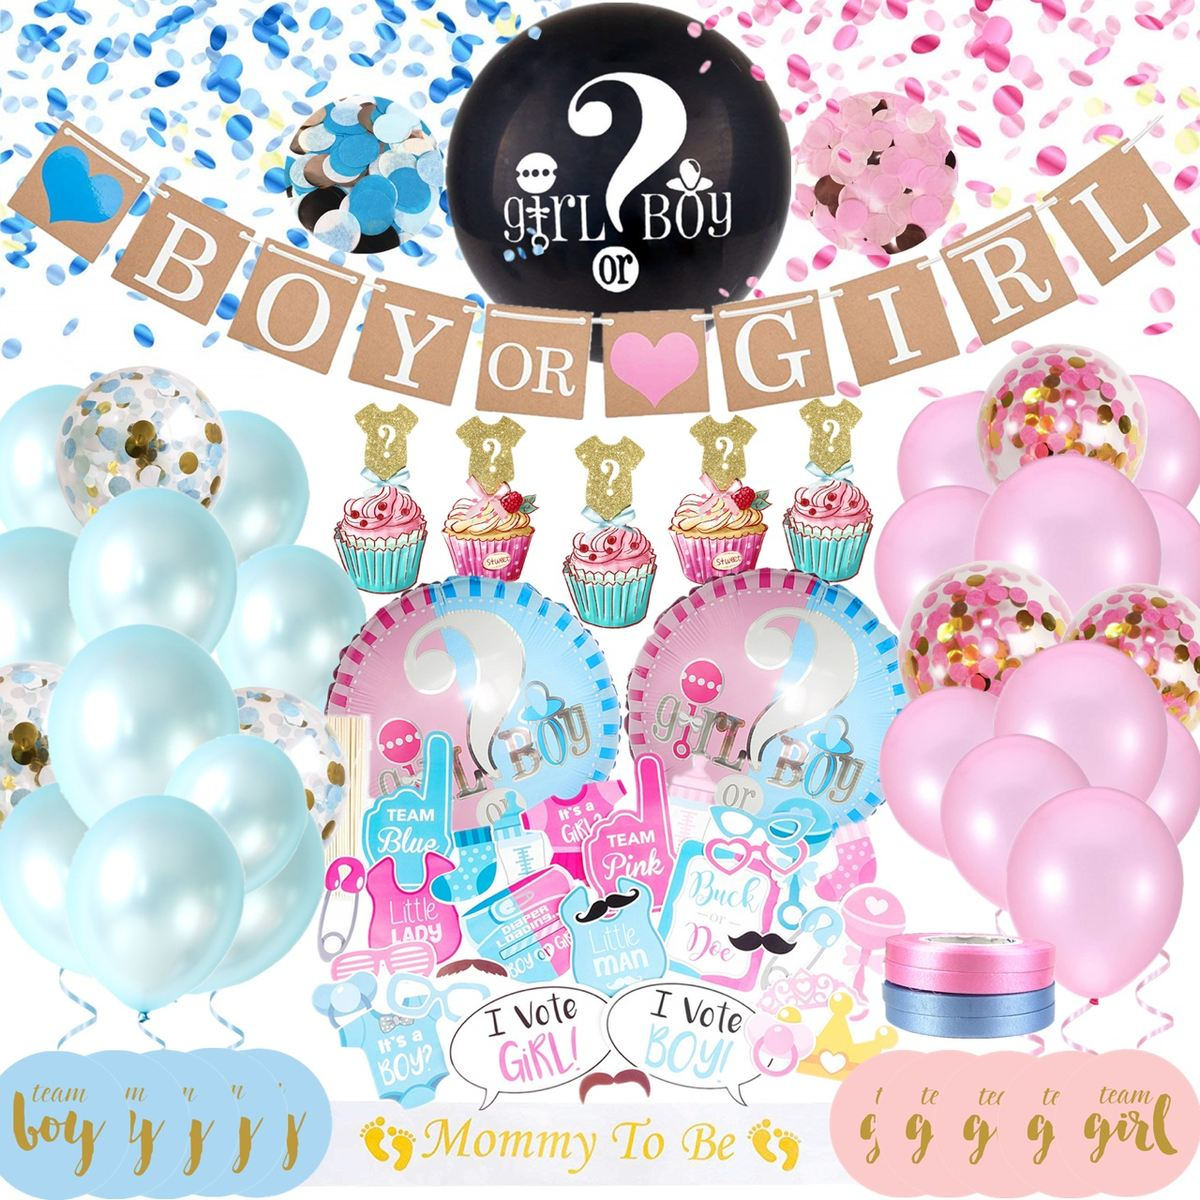 80 pcs Baby Gender Reveal Party Supplies Kit For Baby Boy Or Girl Gender Reveal Decorations Boy or Girl Balloon Gender Reveal Party Decorations Baby Reveal Props Baby Shower Decorations